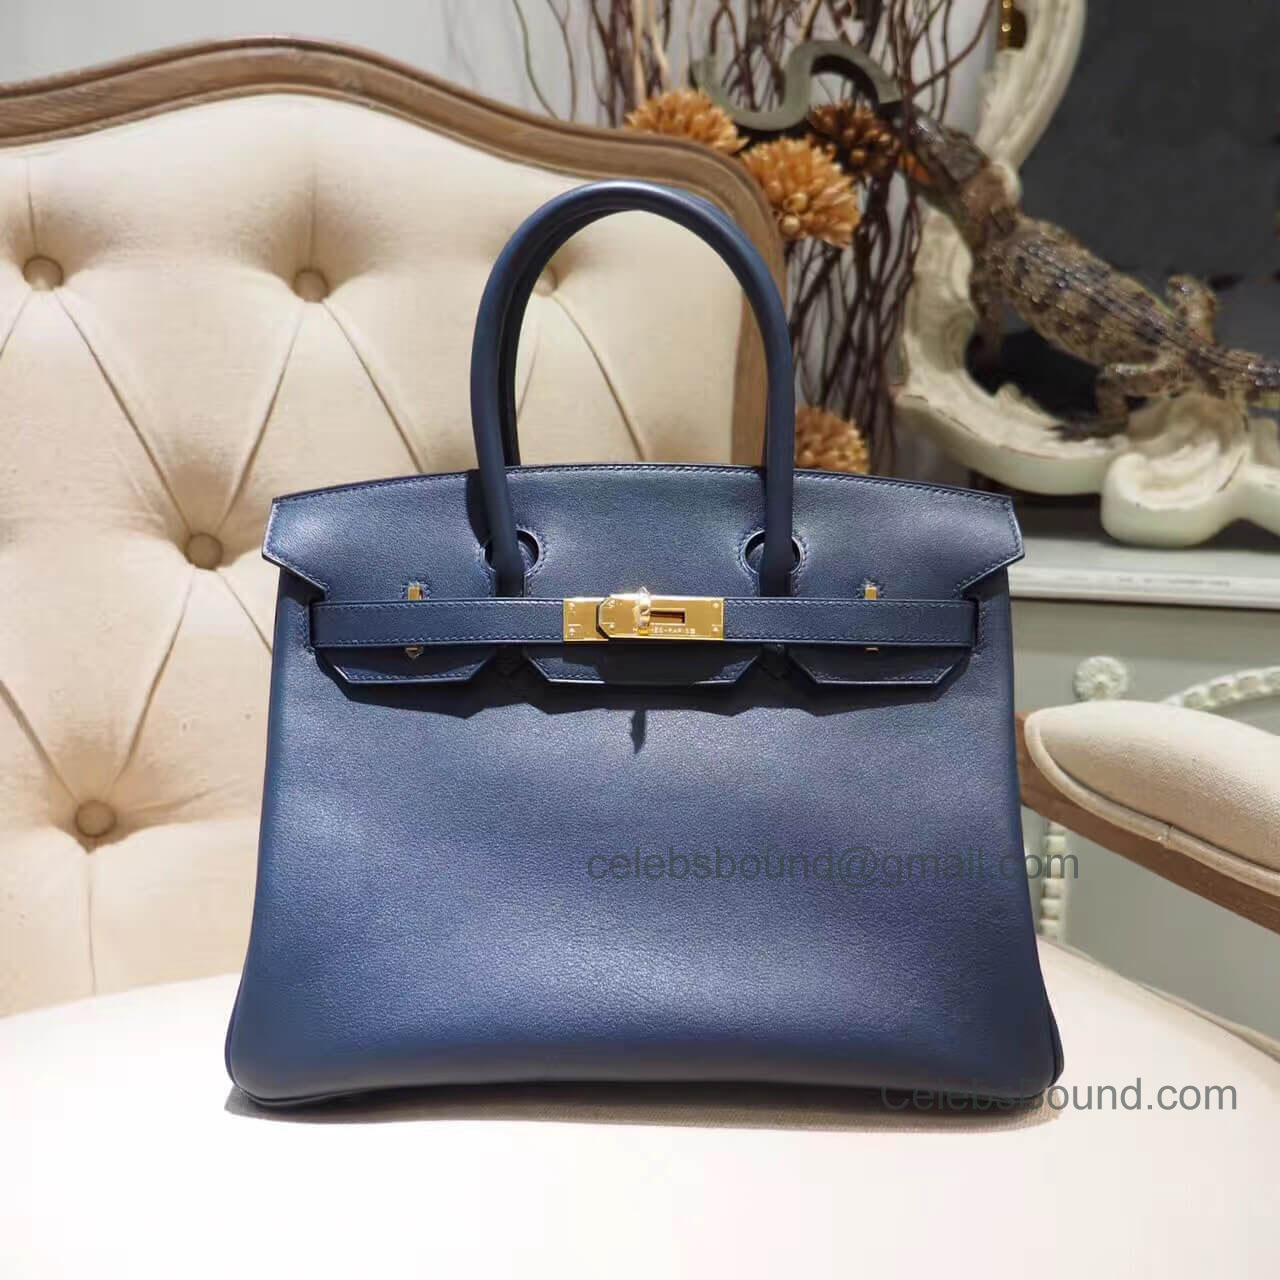 Hermes Birkin 30 Handbag in Bicolored 2z Blue Nuit Swift GHW